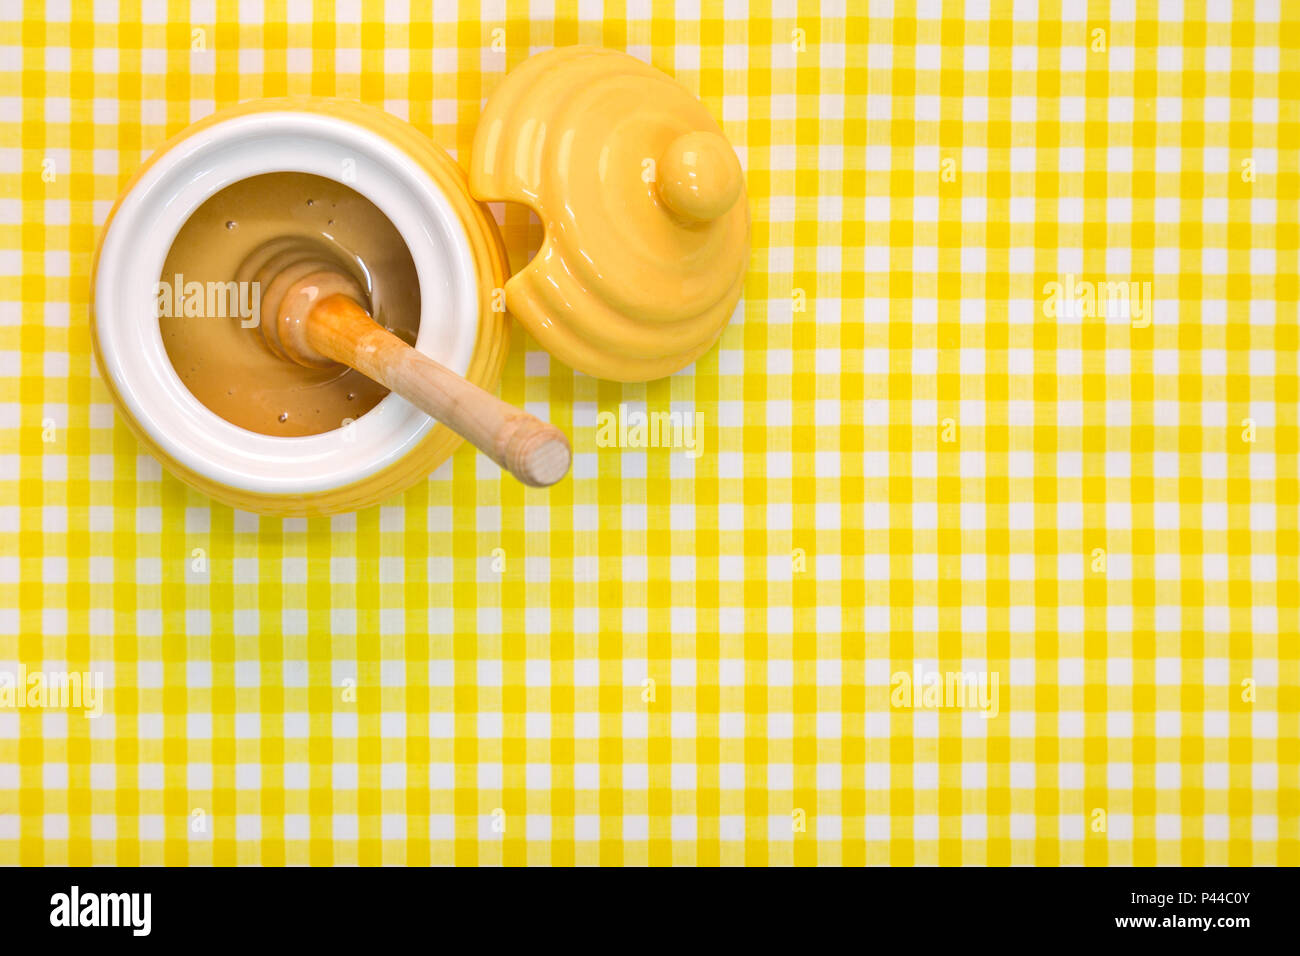 A beehive themed pot full of Manuka honey with wooden dipper on a yellow gingham background with copy space. - Stock Image